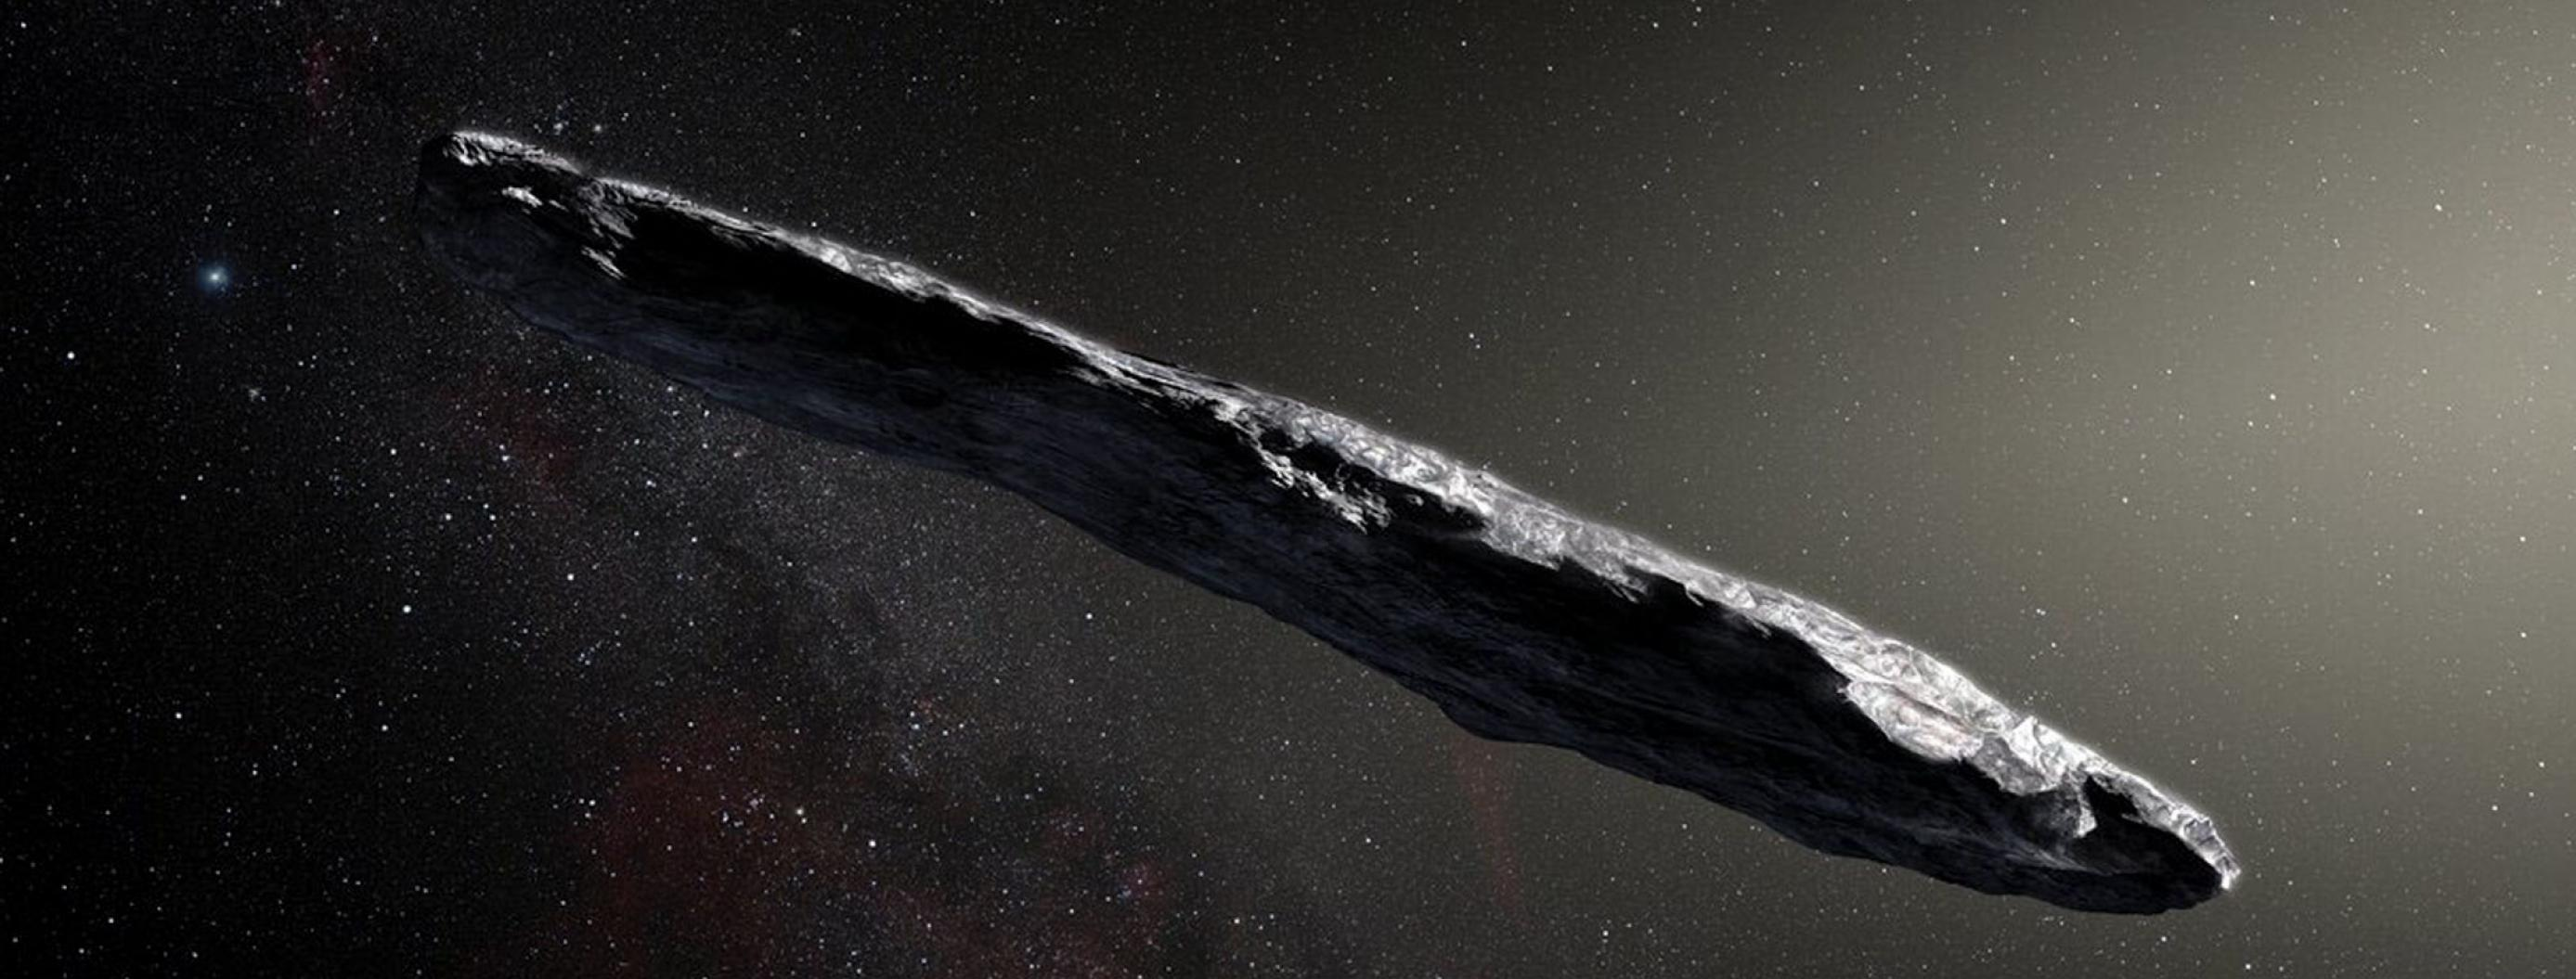 An Interstellar Object Spotted Last Year May Have Been an Alien Spaceship According to Harvard Paper